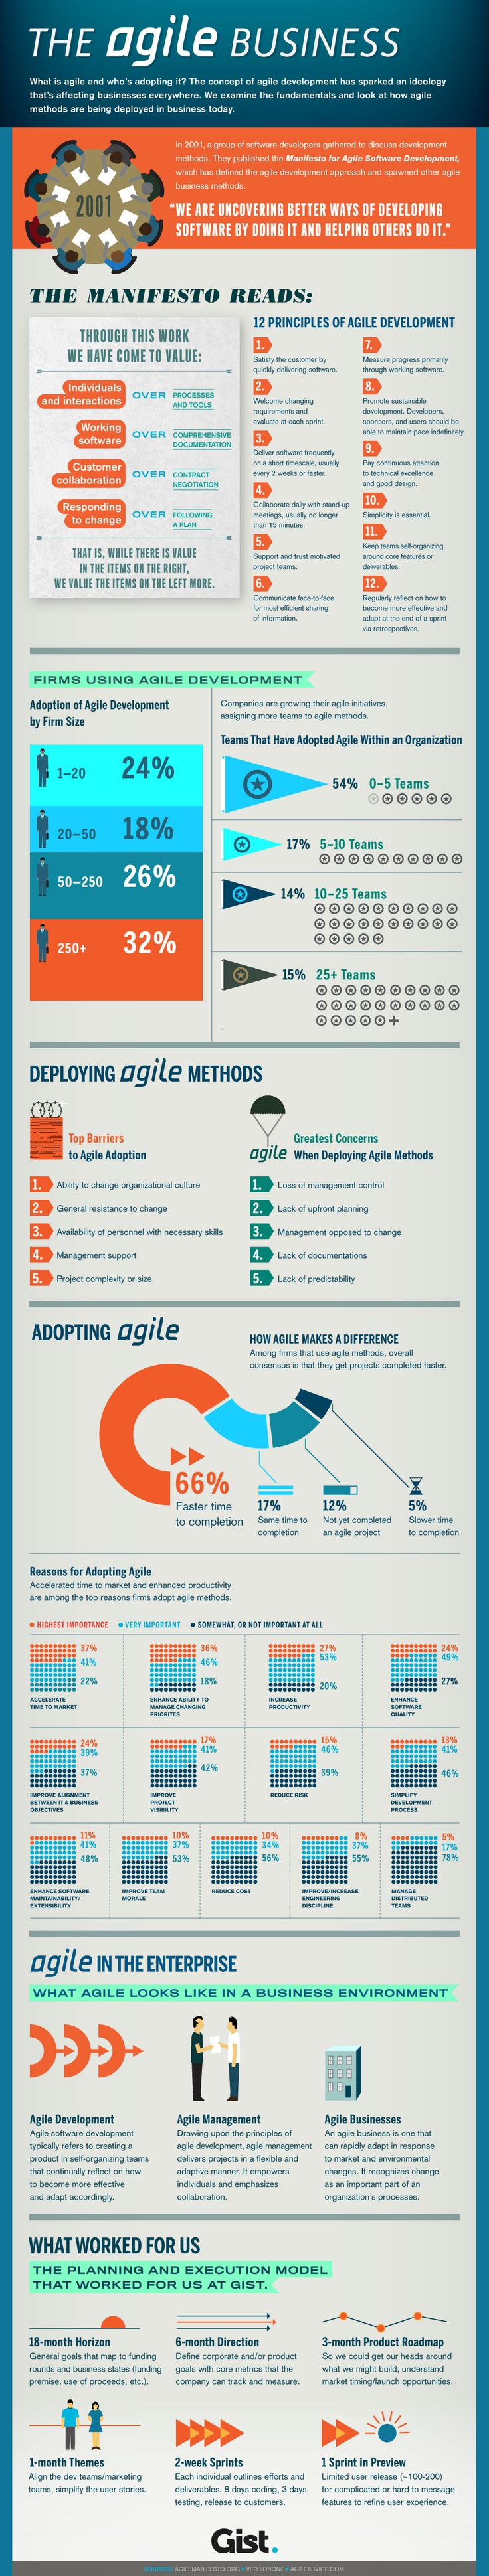 The Agile Business: From Agile Software Development to Agile Management.